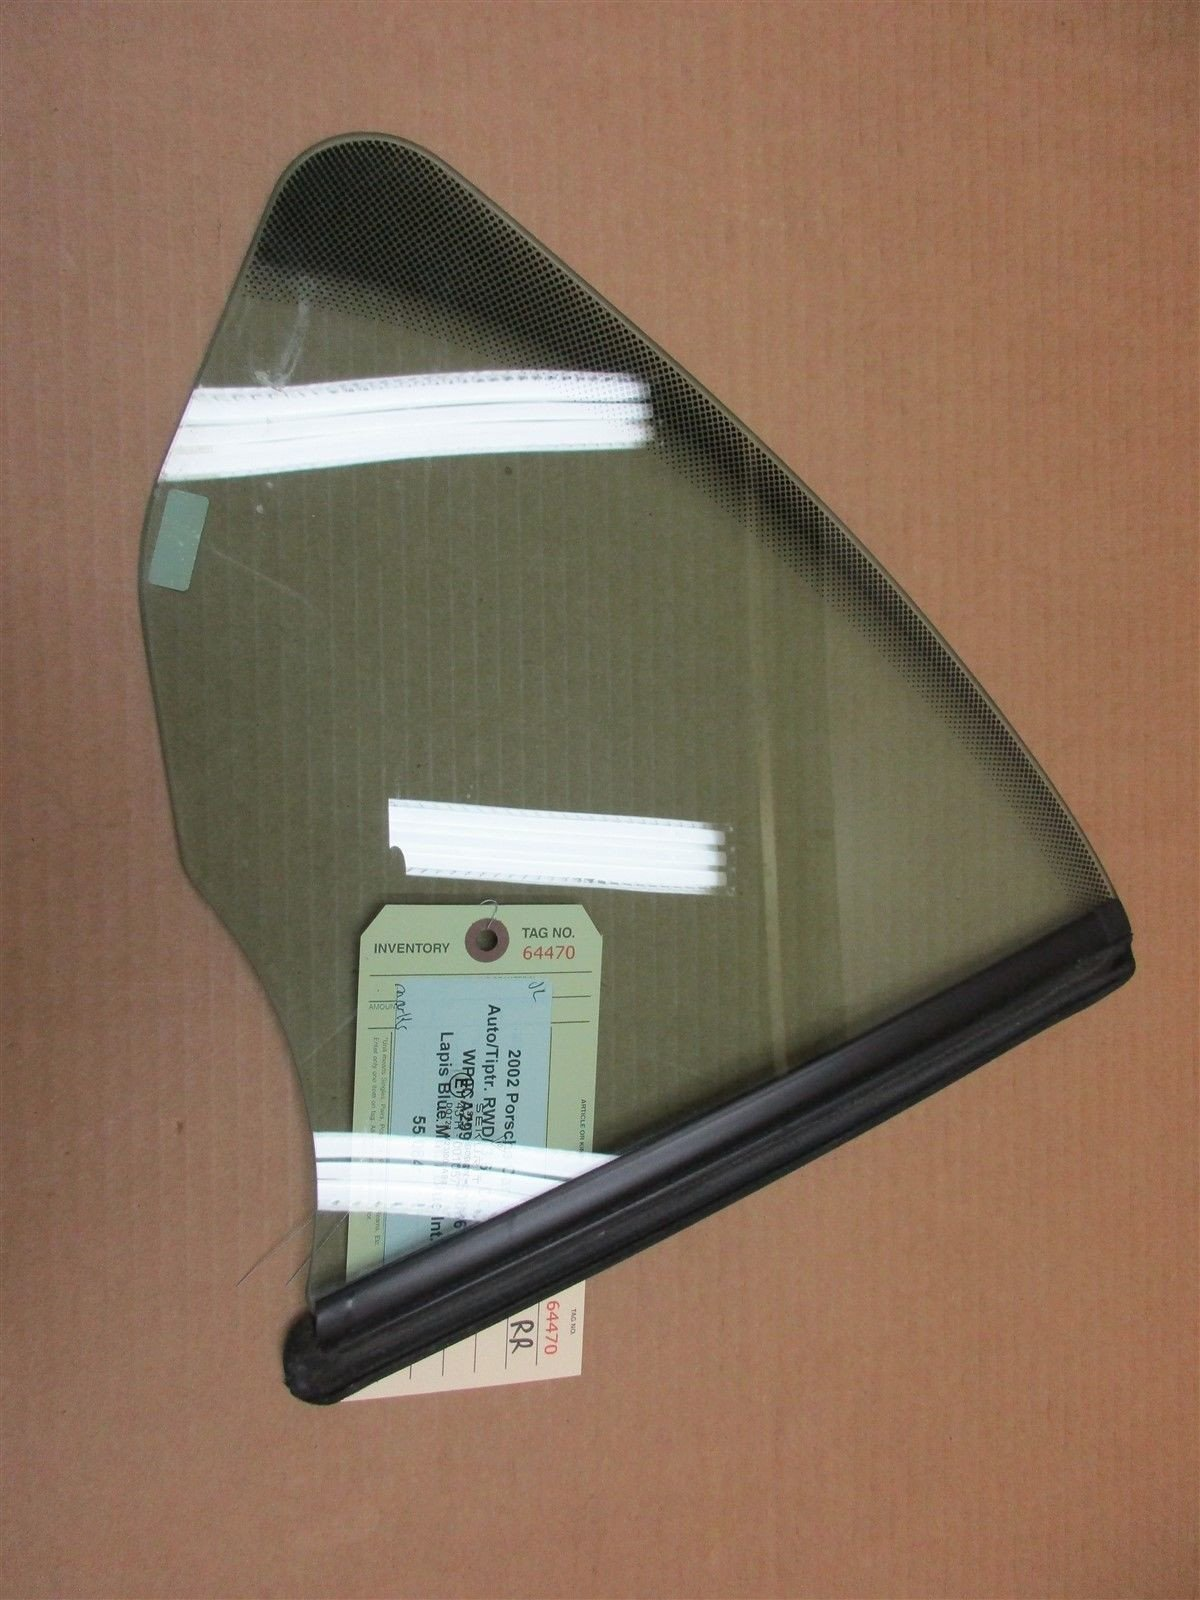 02 Carrera 911 RWD Porsche 996 Cabrio R REAR GLASS WINDOW PASSENGER 55,084